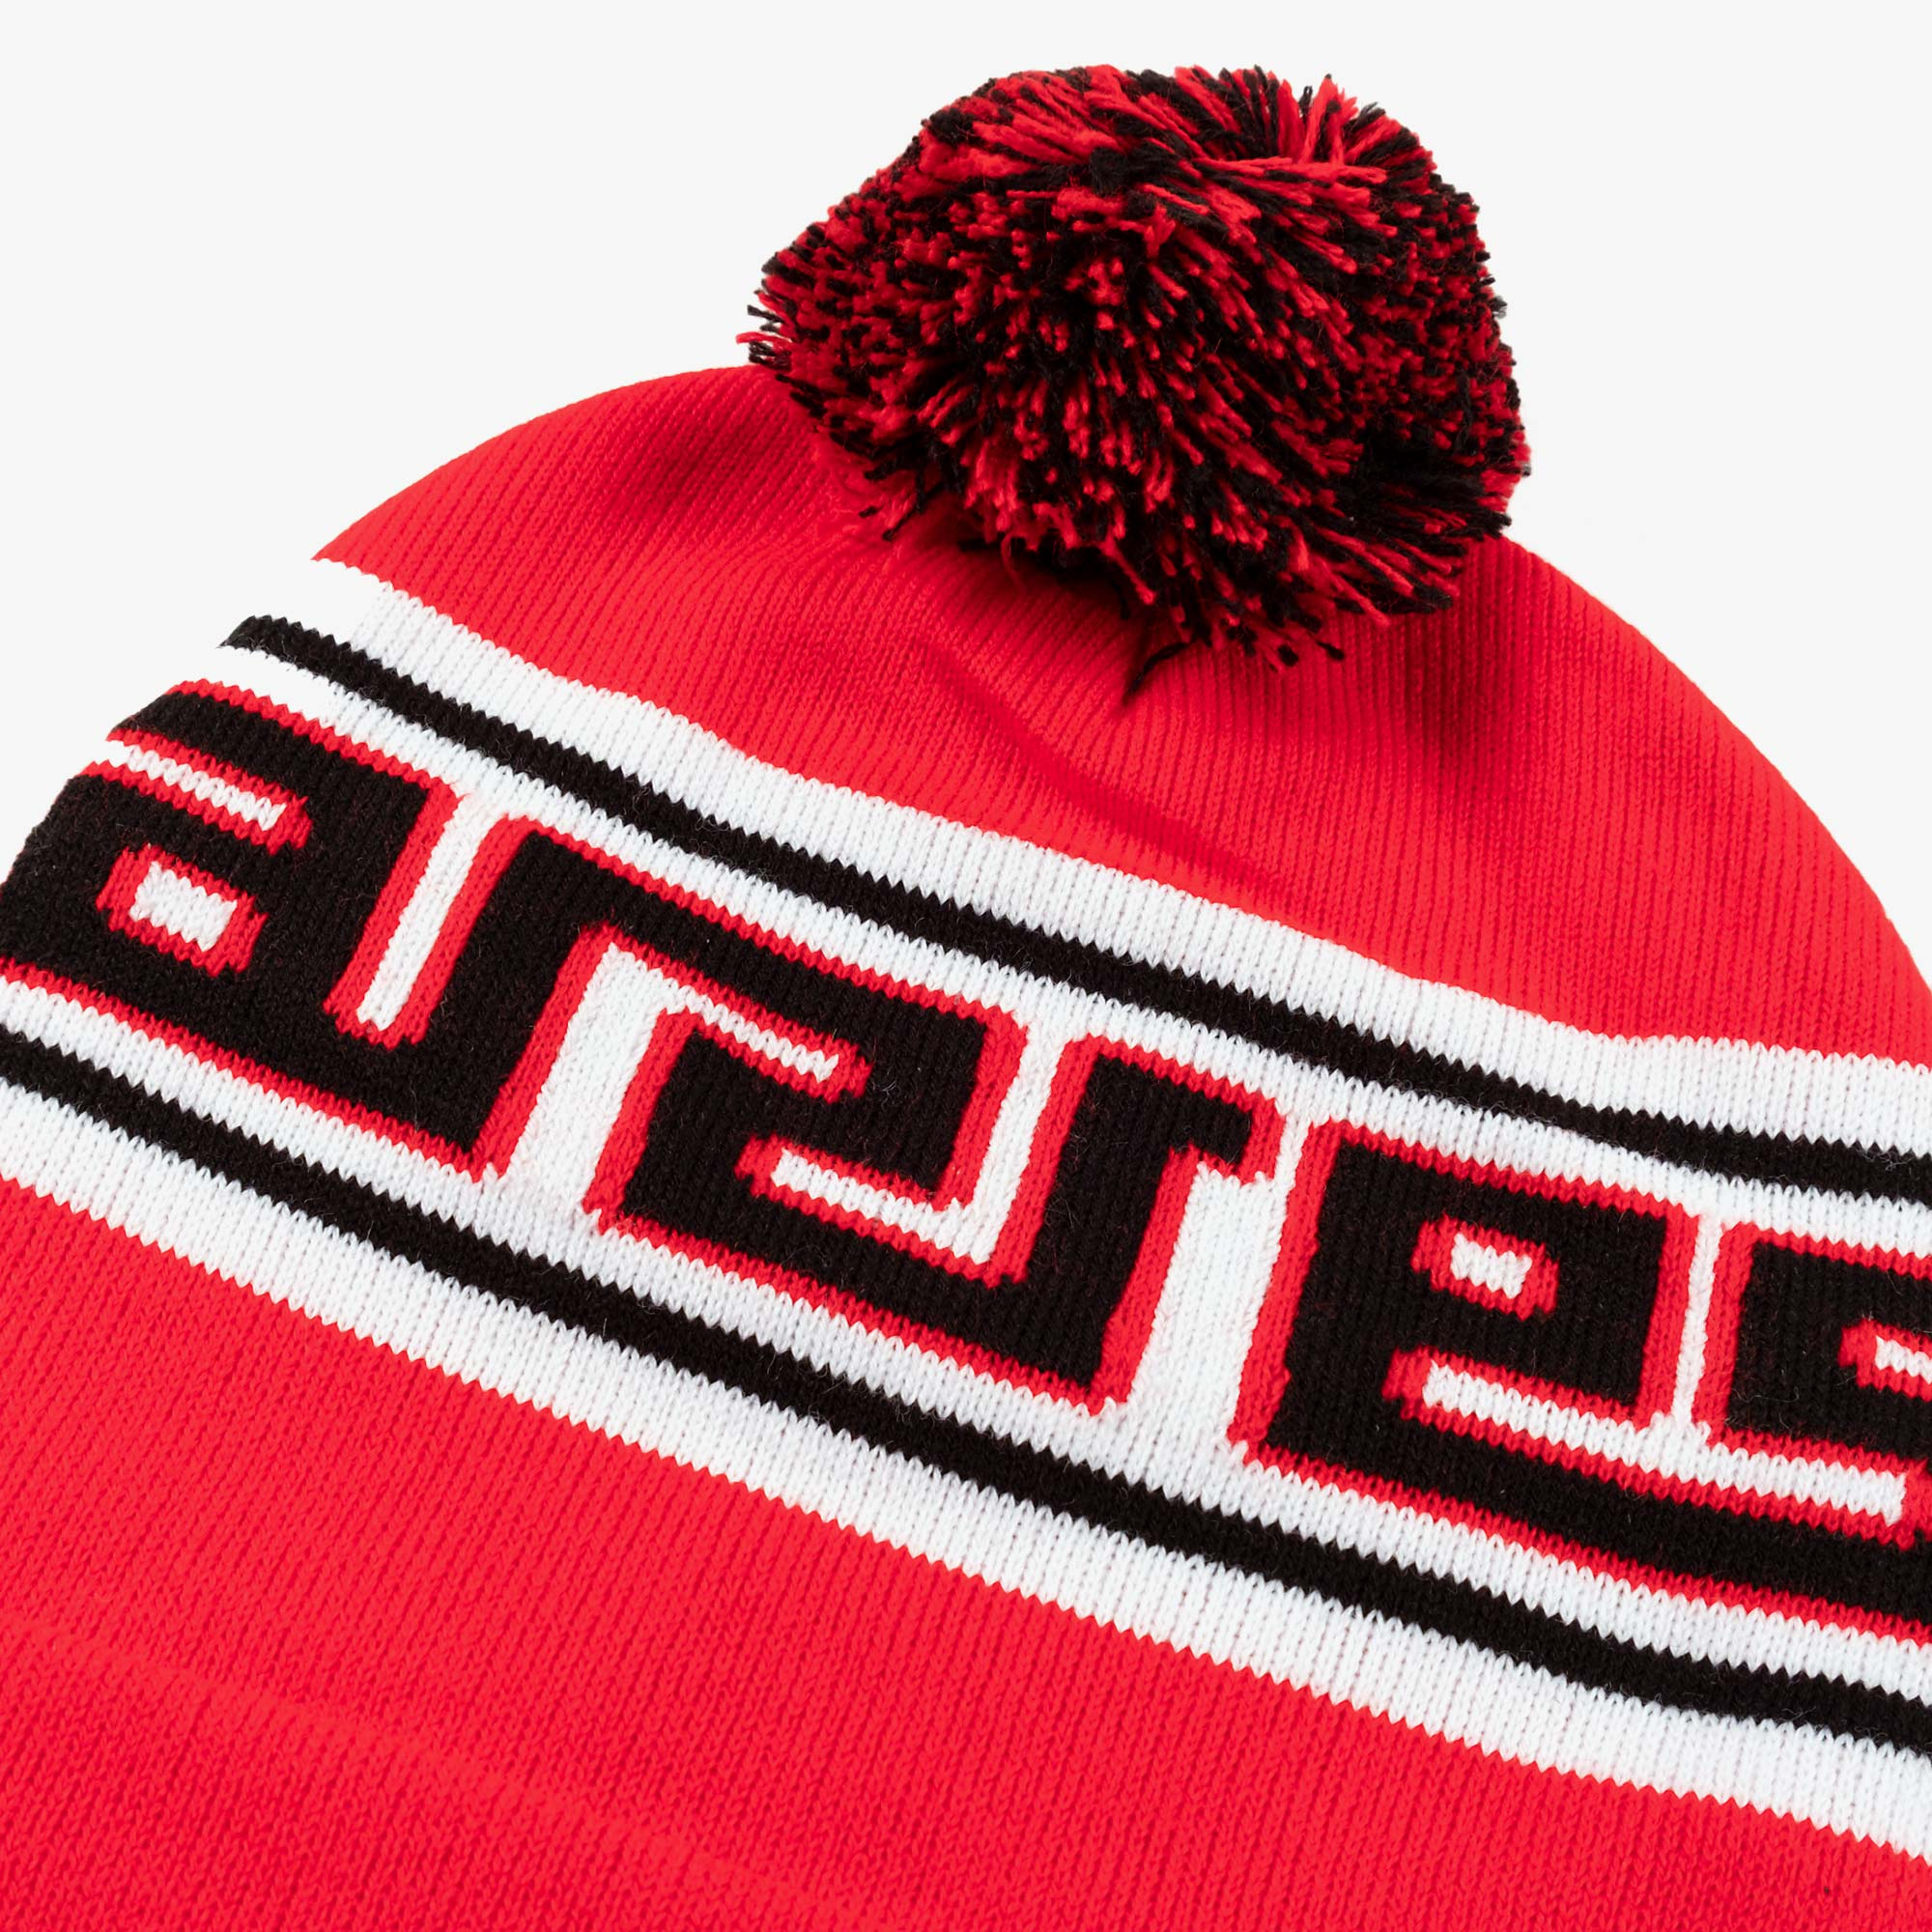 Aries Meandros Beanie - Black / Red 2